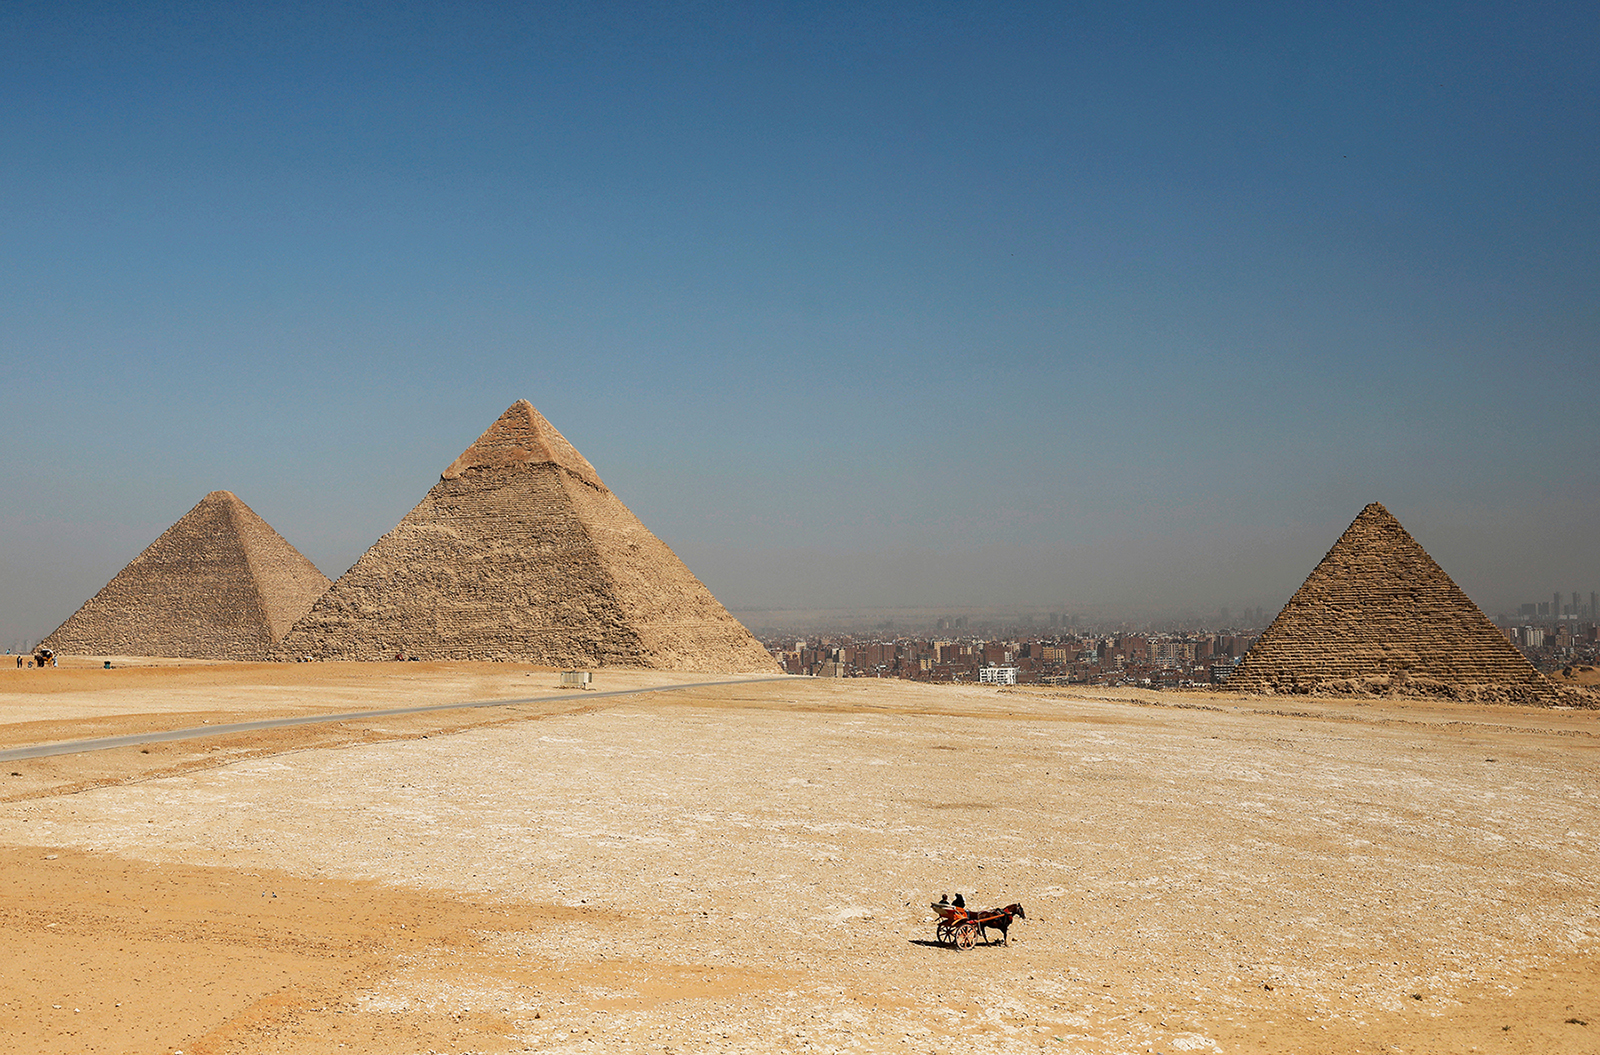 Tourists ride a horse-drawn cart in front of the Great Pyramids of Giza, on the outskirts of Cairo